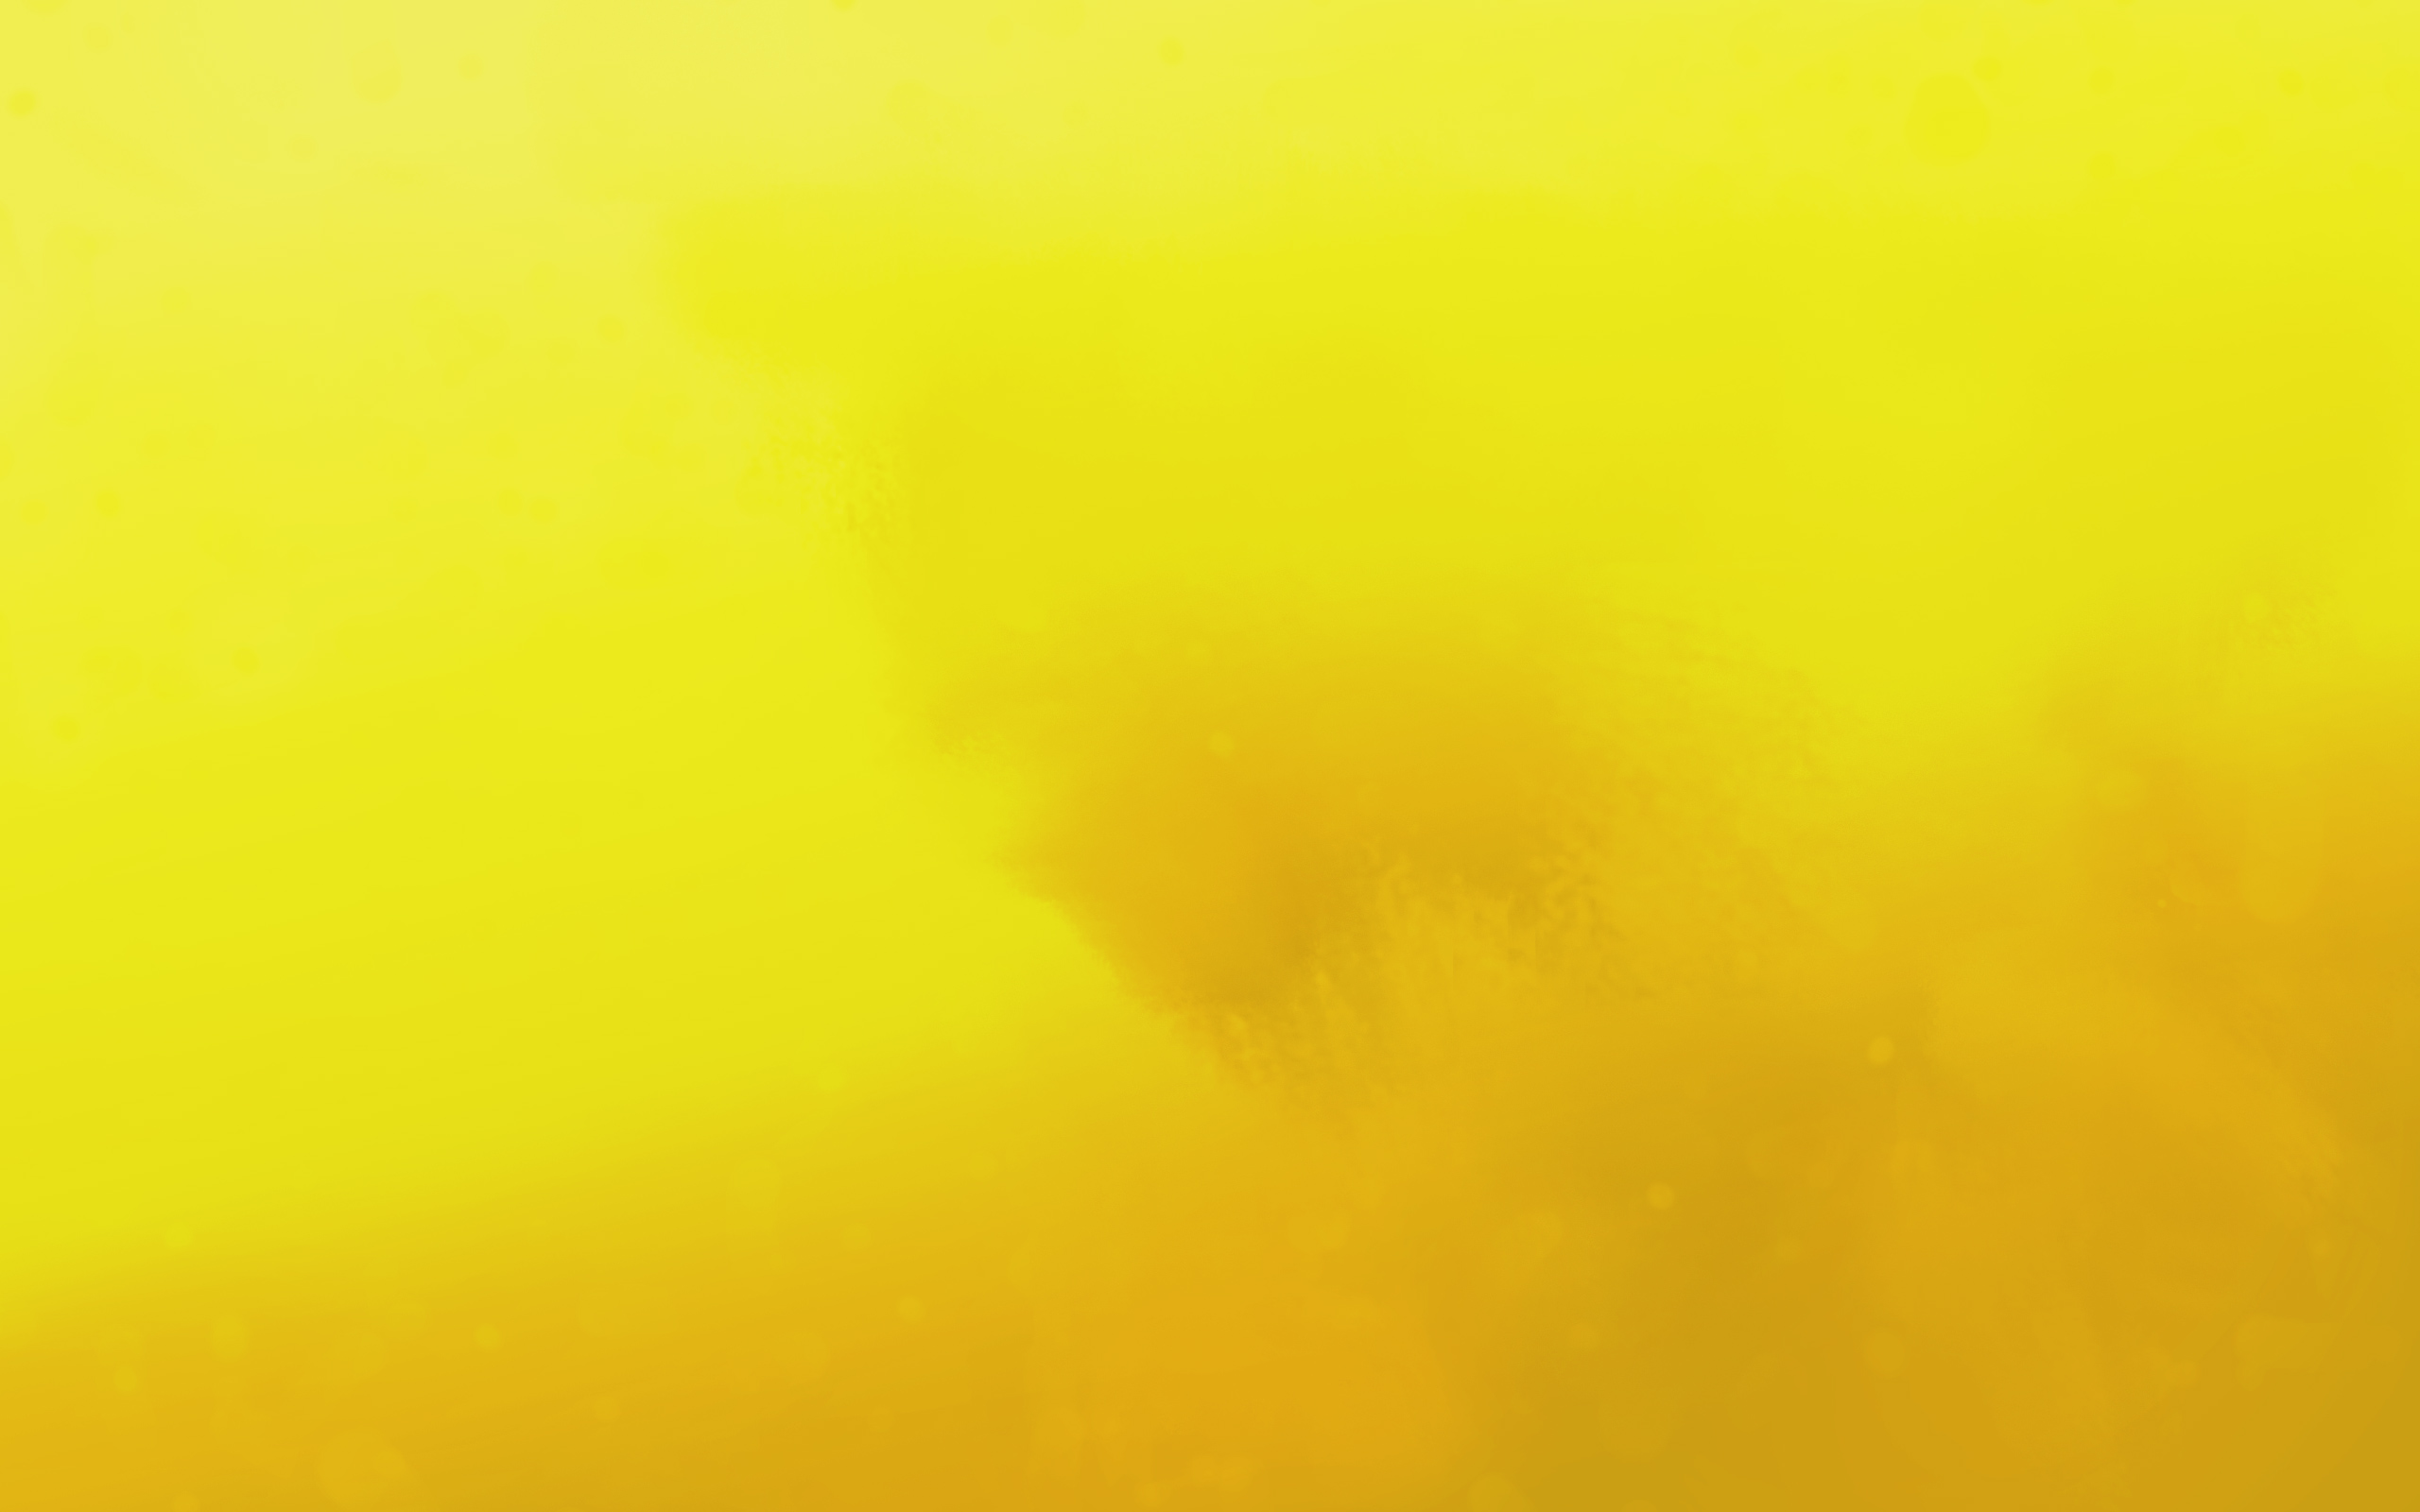 yellow-wallpapers-8